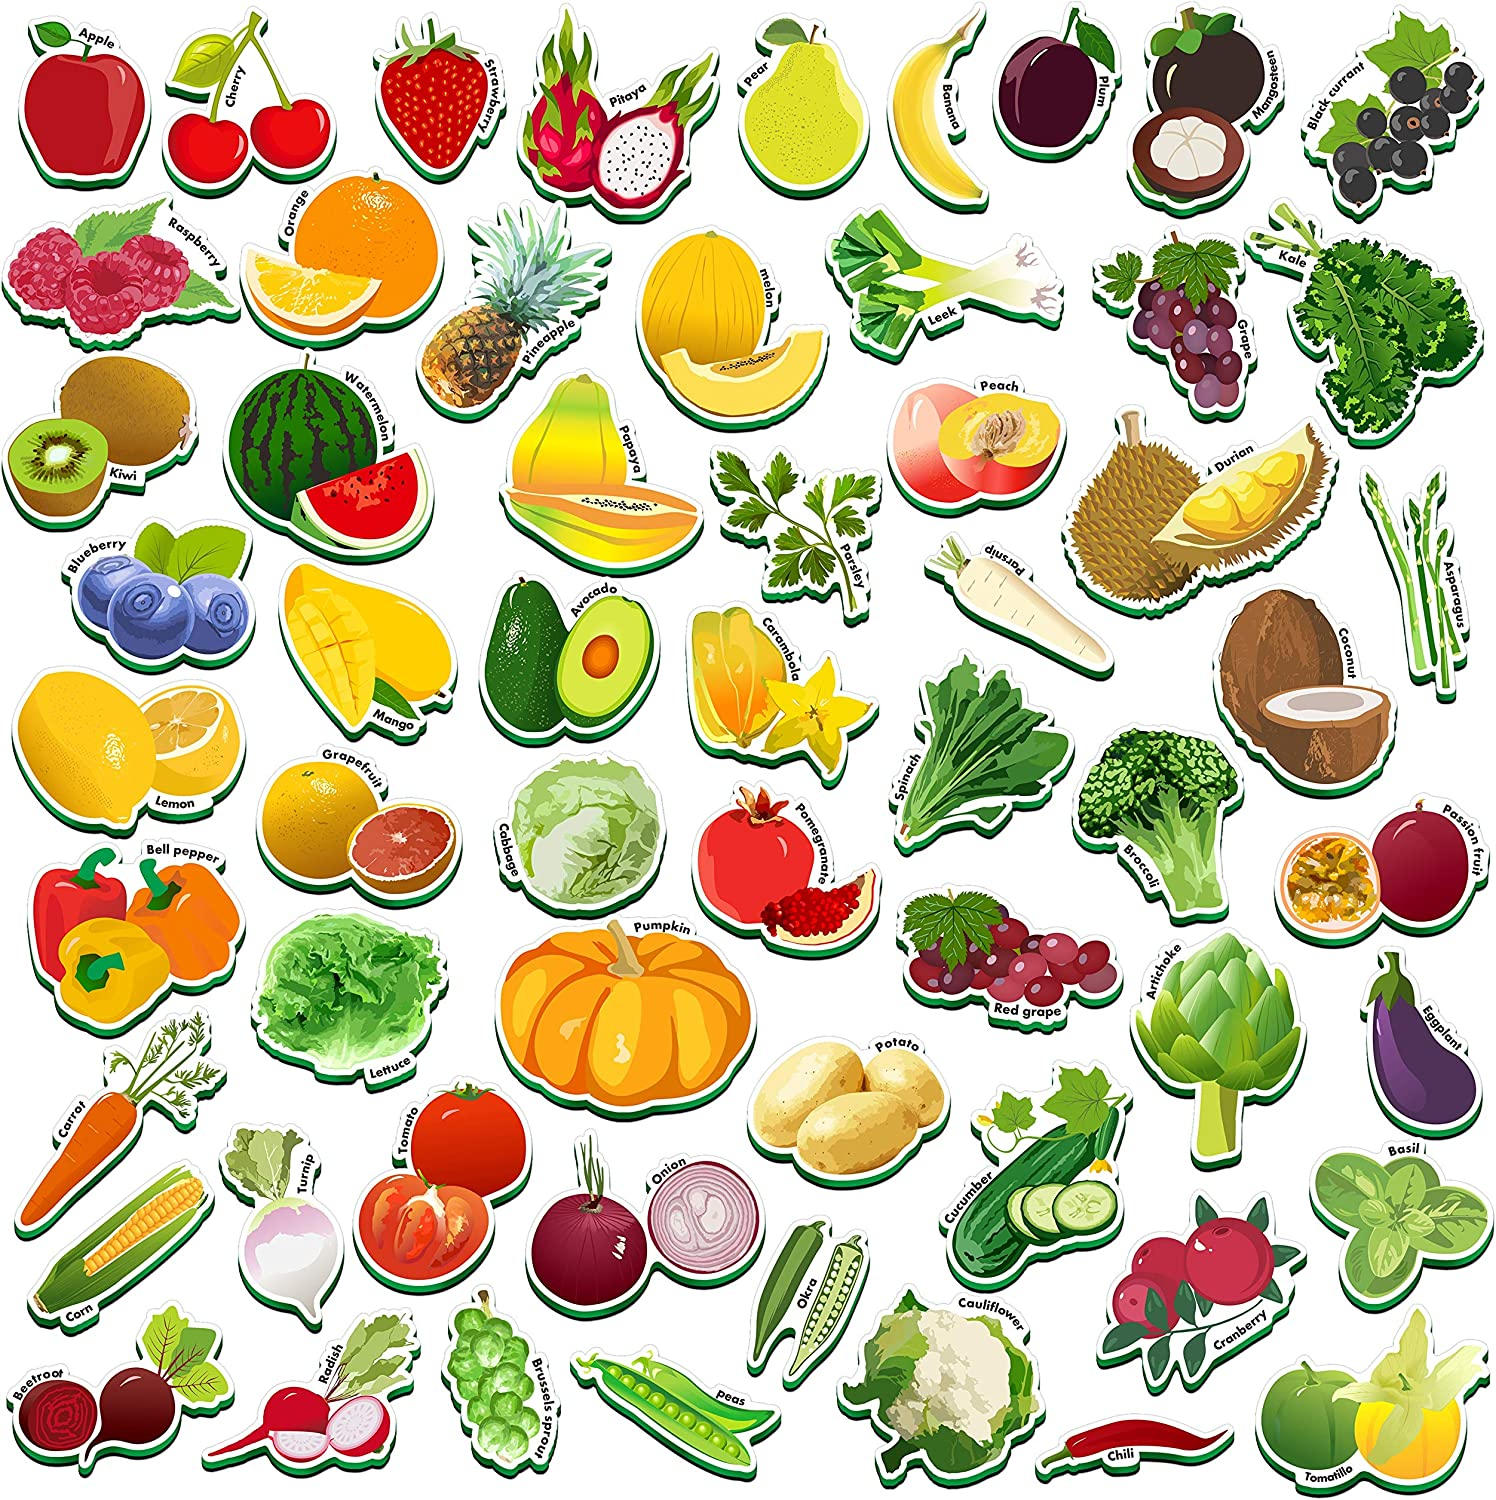 Spritegru 59 PCS Fruits & Veggies Magnets for Toddlers Kids, Perfect for Preschool Learning